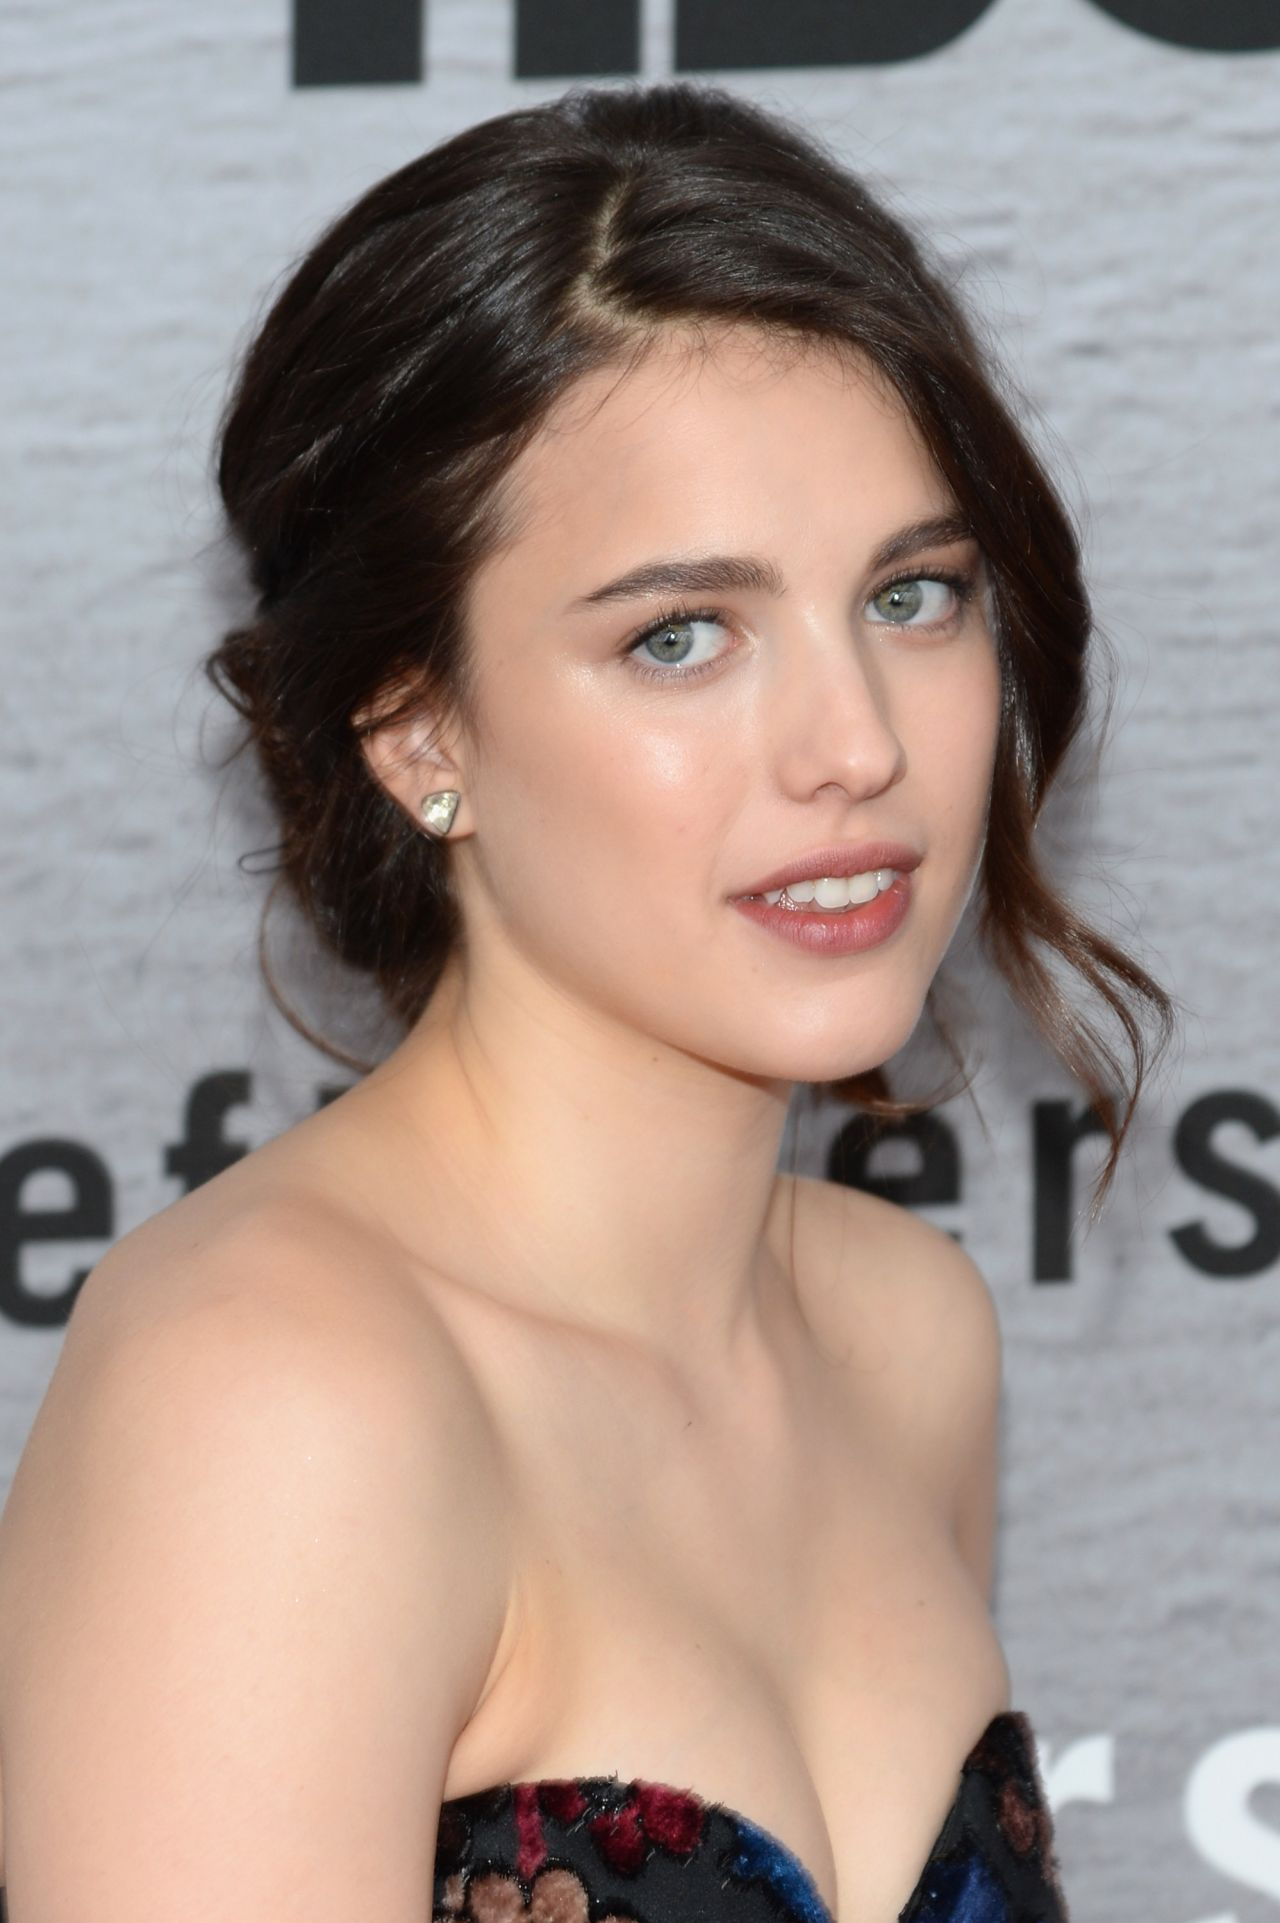 Margaret Qualley The Leftovers Premiere In New York City